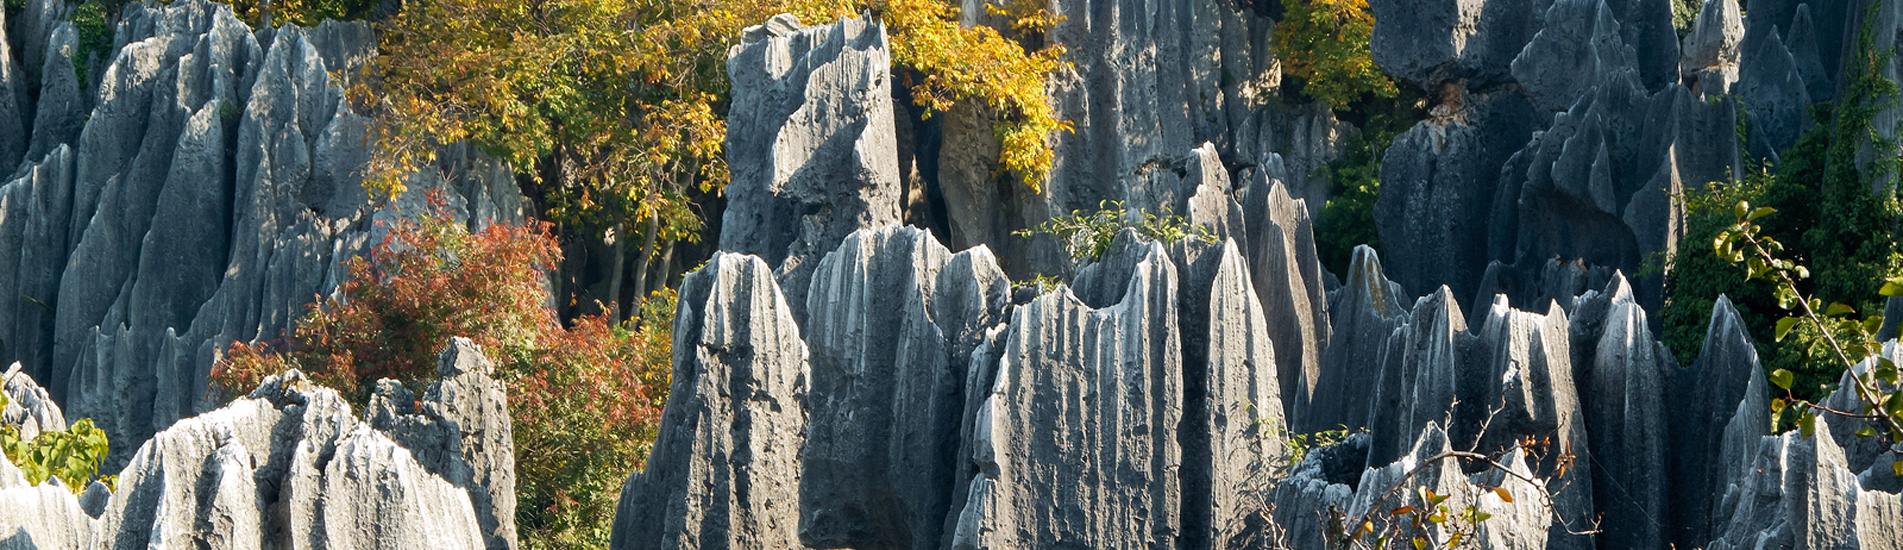 the Stone Forest in Kunming, the capital of Yunnan Province